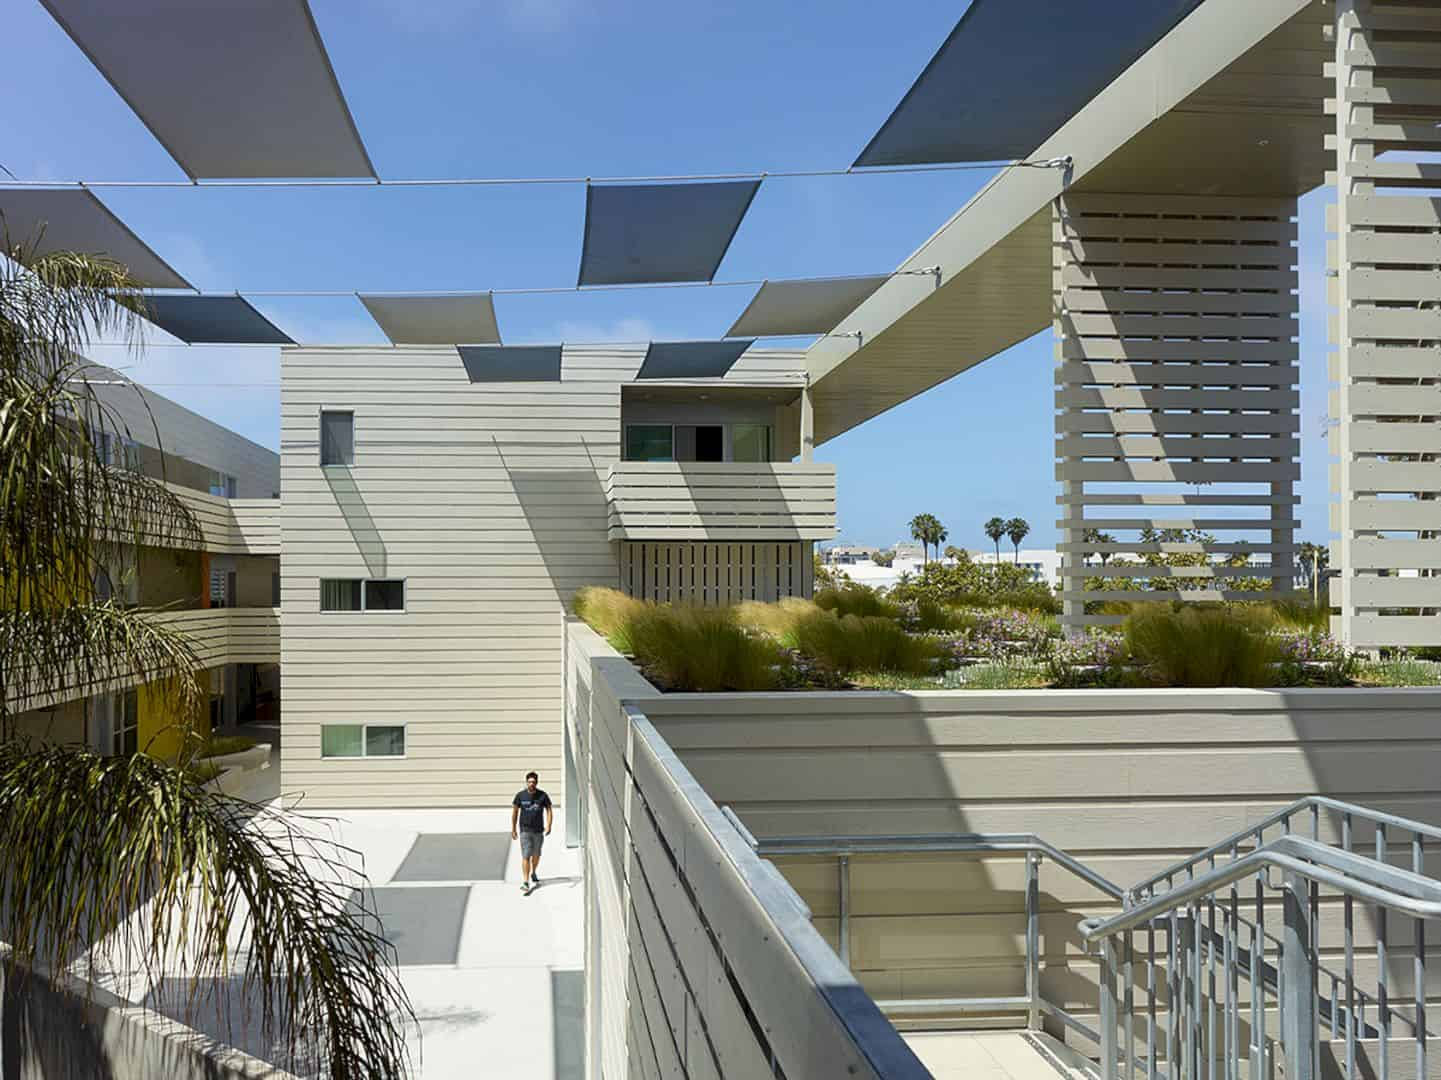 430 Pico Place: An Affordable and Green Apartment Building in Santa Monica